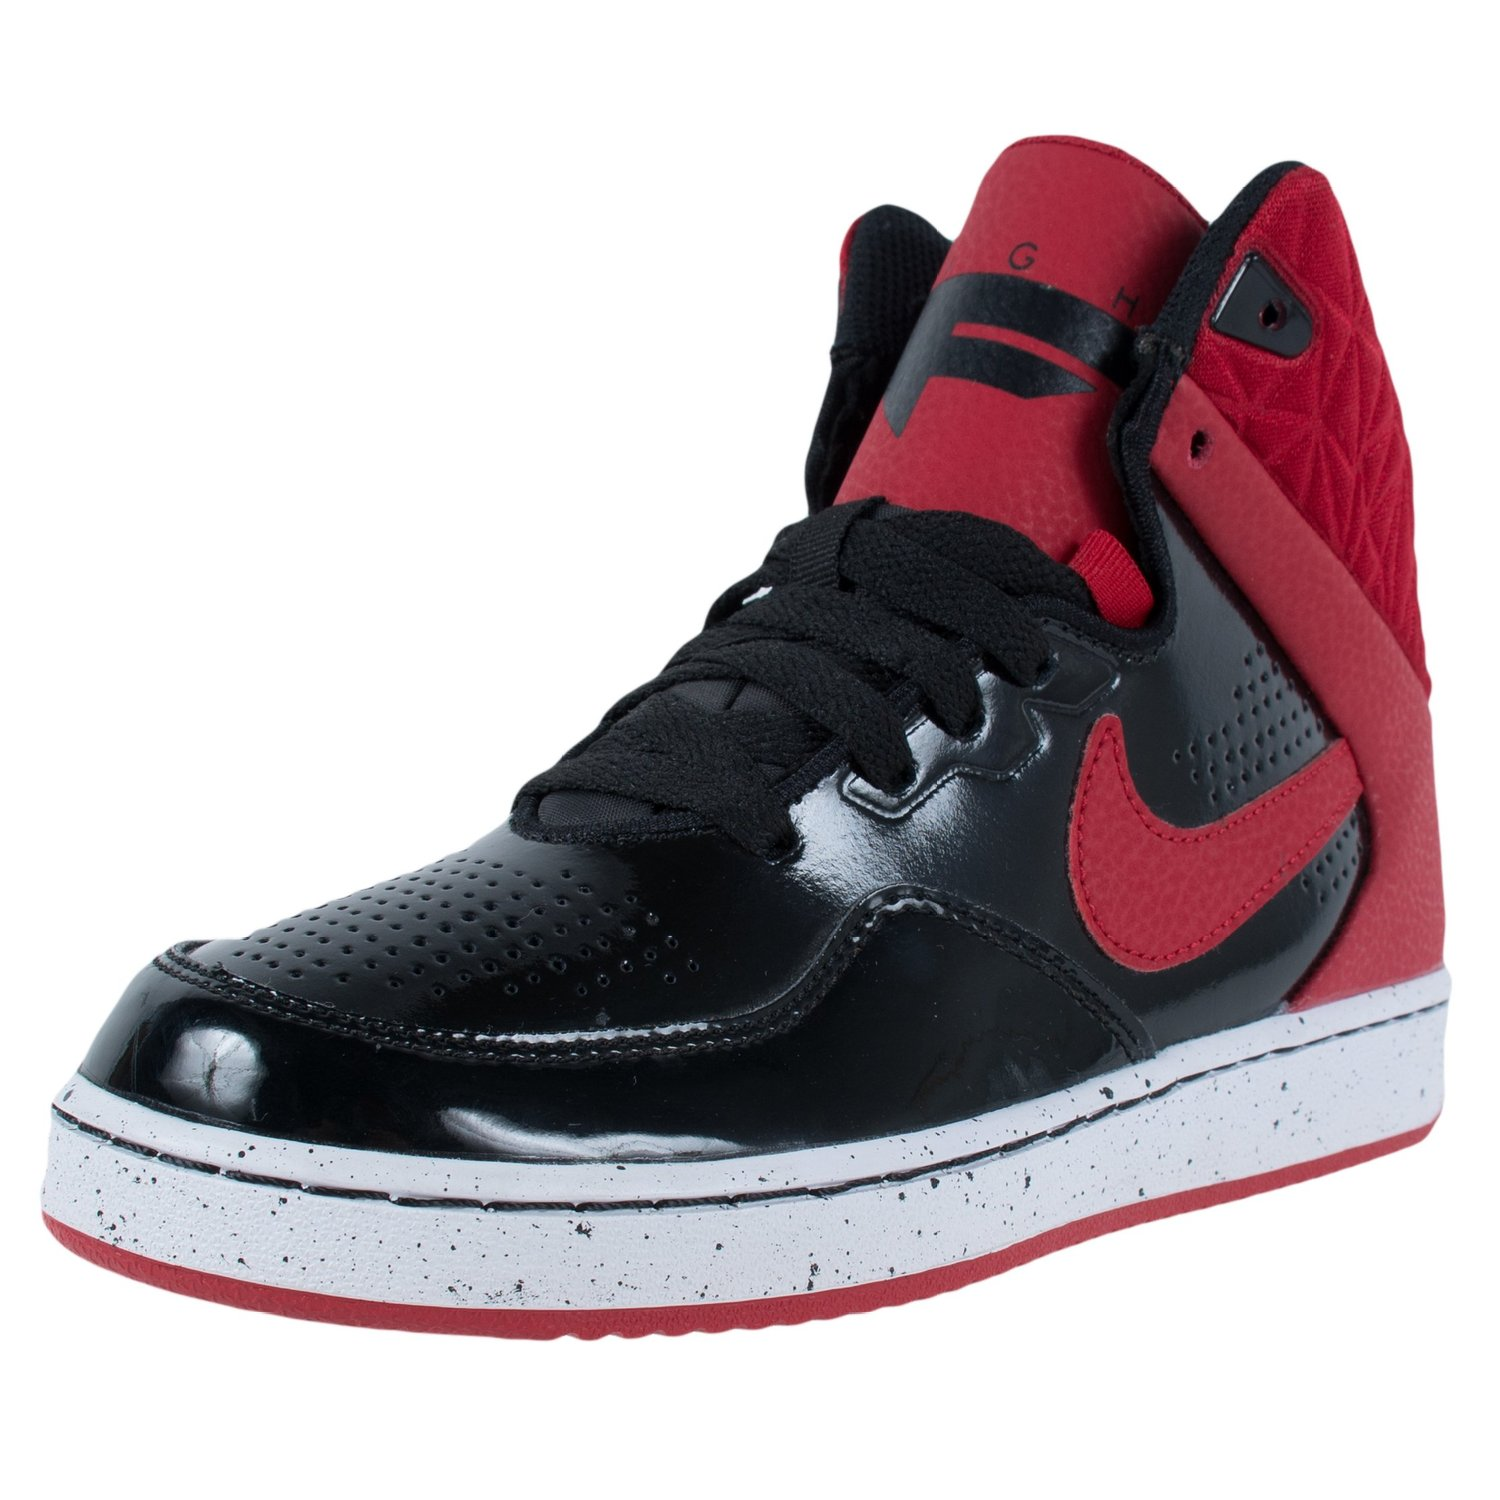 4e3ba759 Get Quotations · NIKE FIRST FLIGHT GS BASKETBALL SNEAKERS BLACK GYM RED  725132 003 SZ 4Y